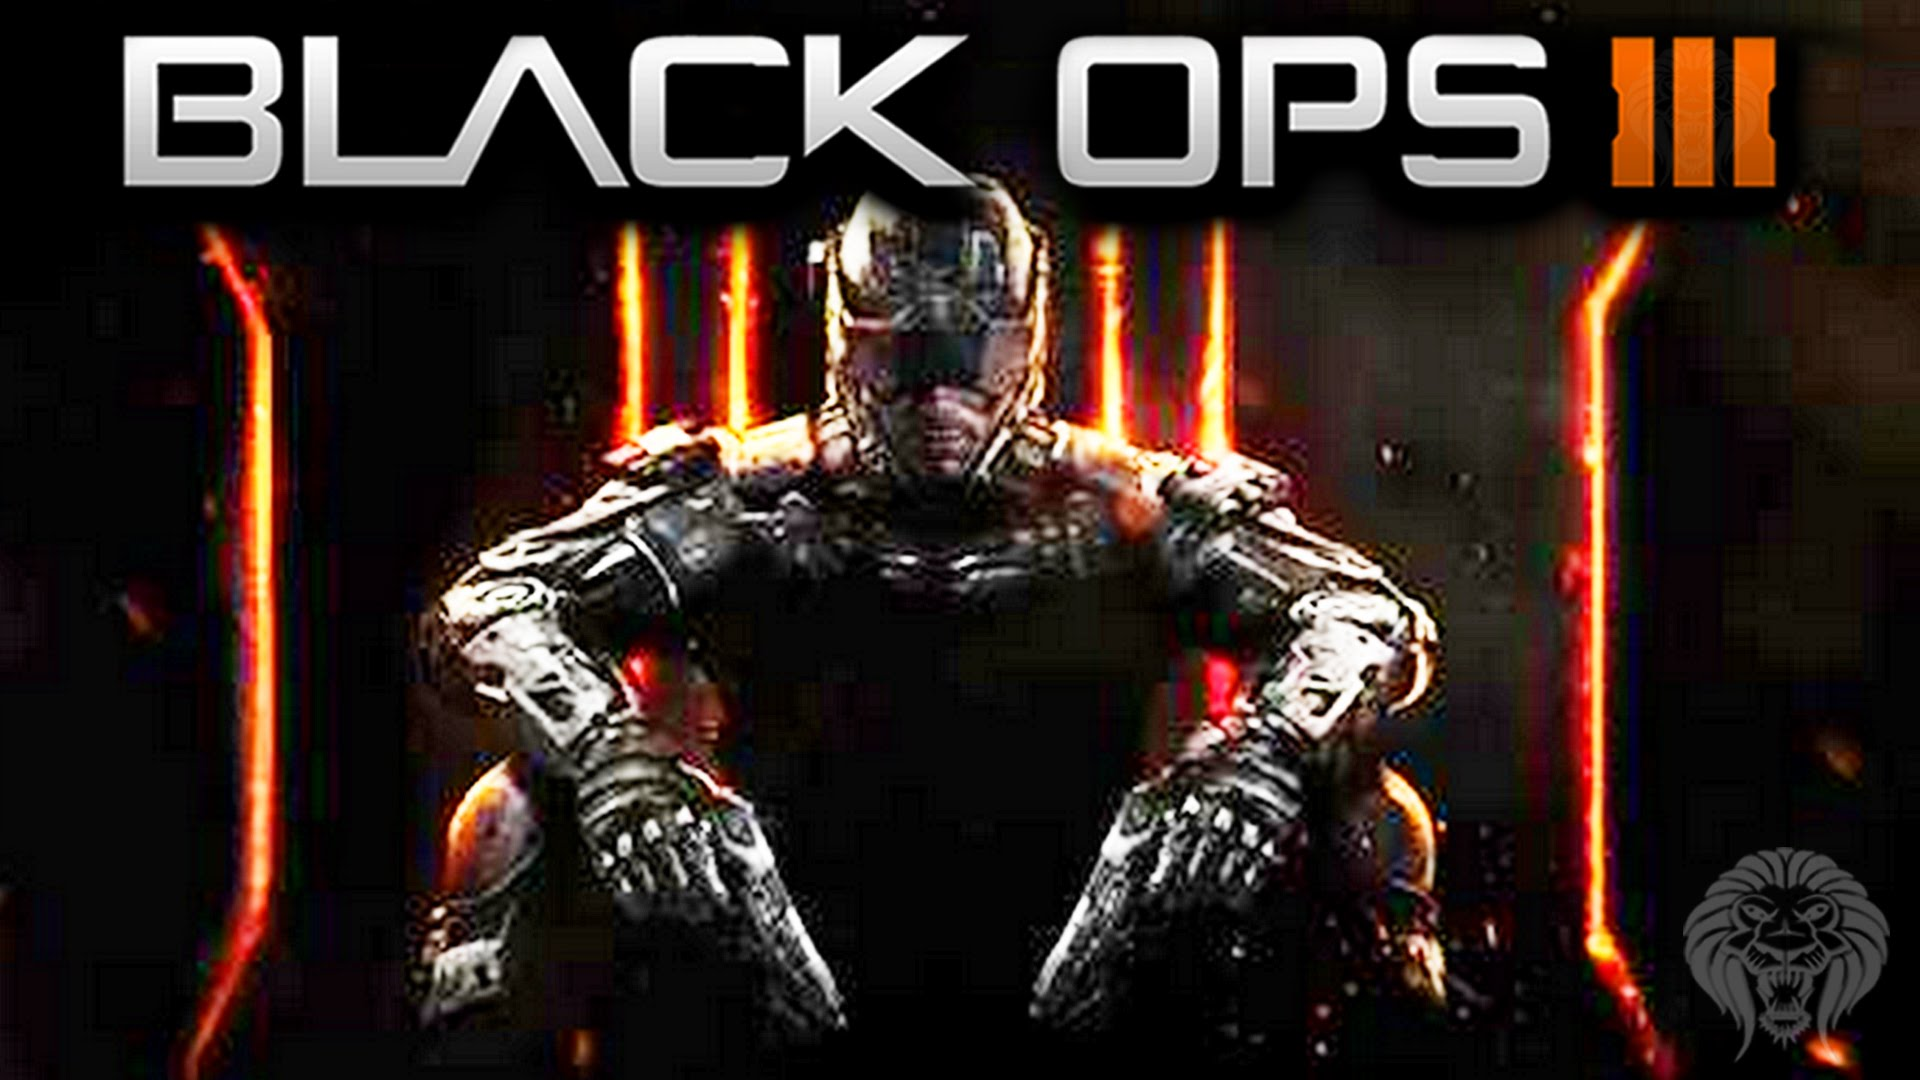 Call Of Duty Bo3 Wallpapers: BO3 Zombies HD Wallpaper